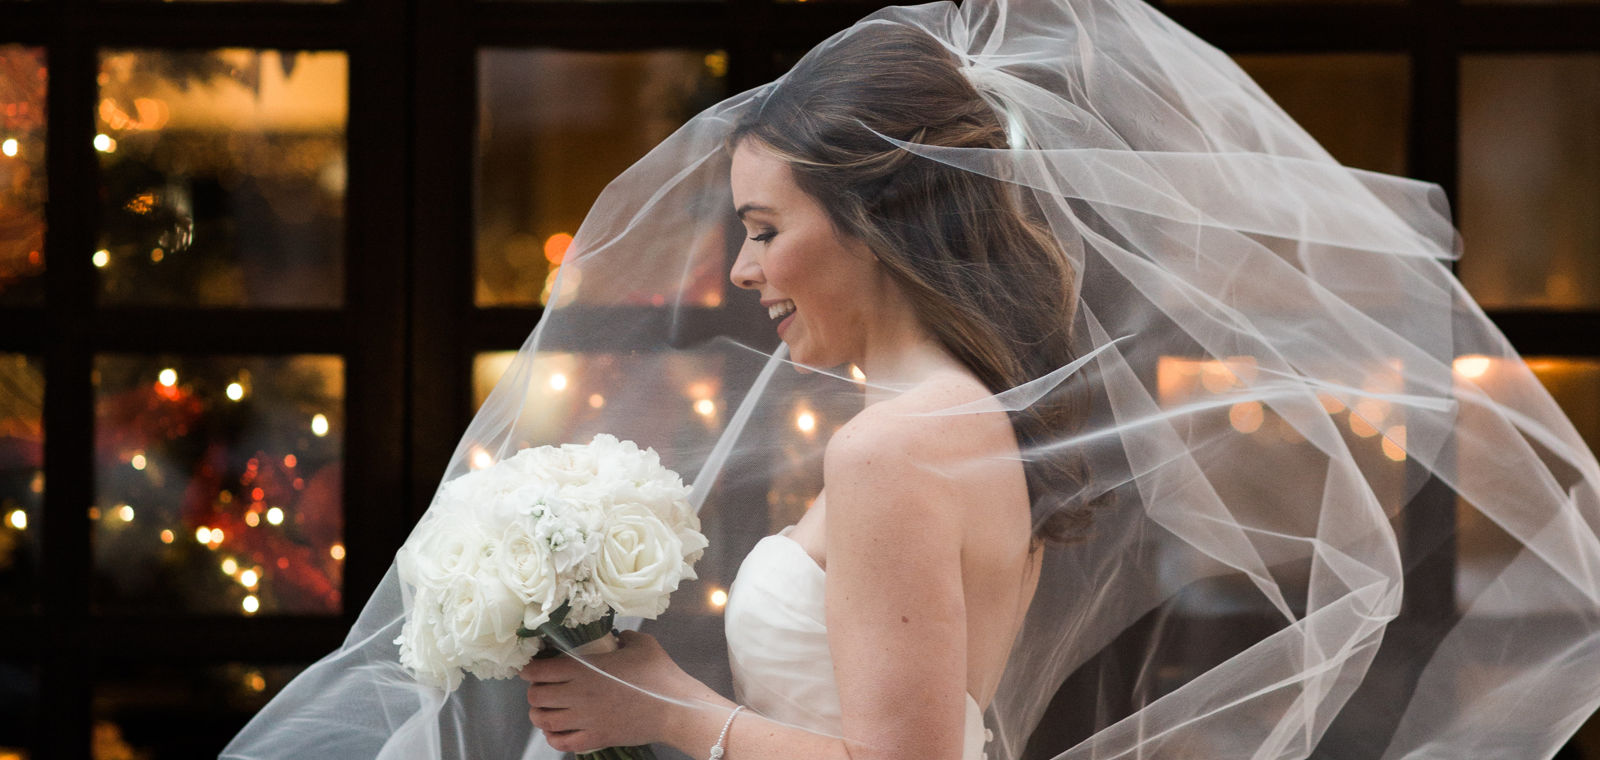 Talbott Hotel_Weddings_Bride Walking with Veil in Air